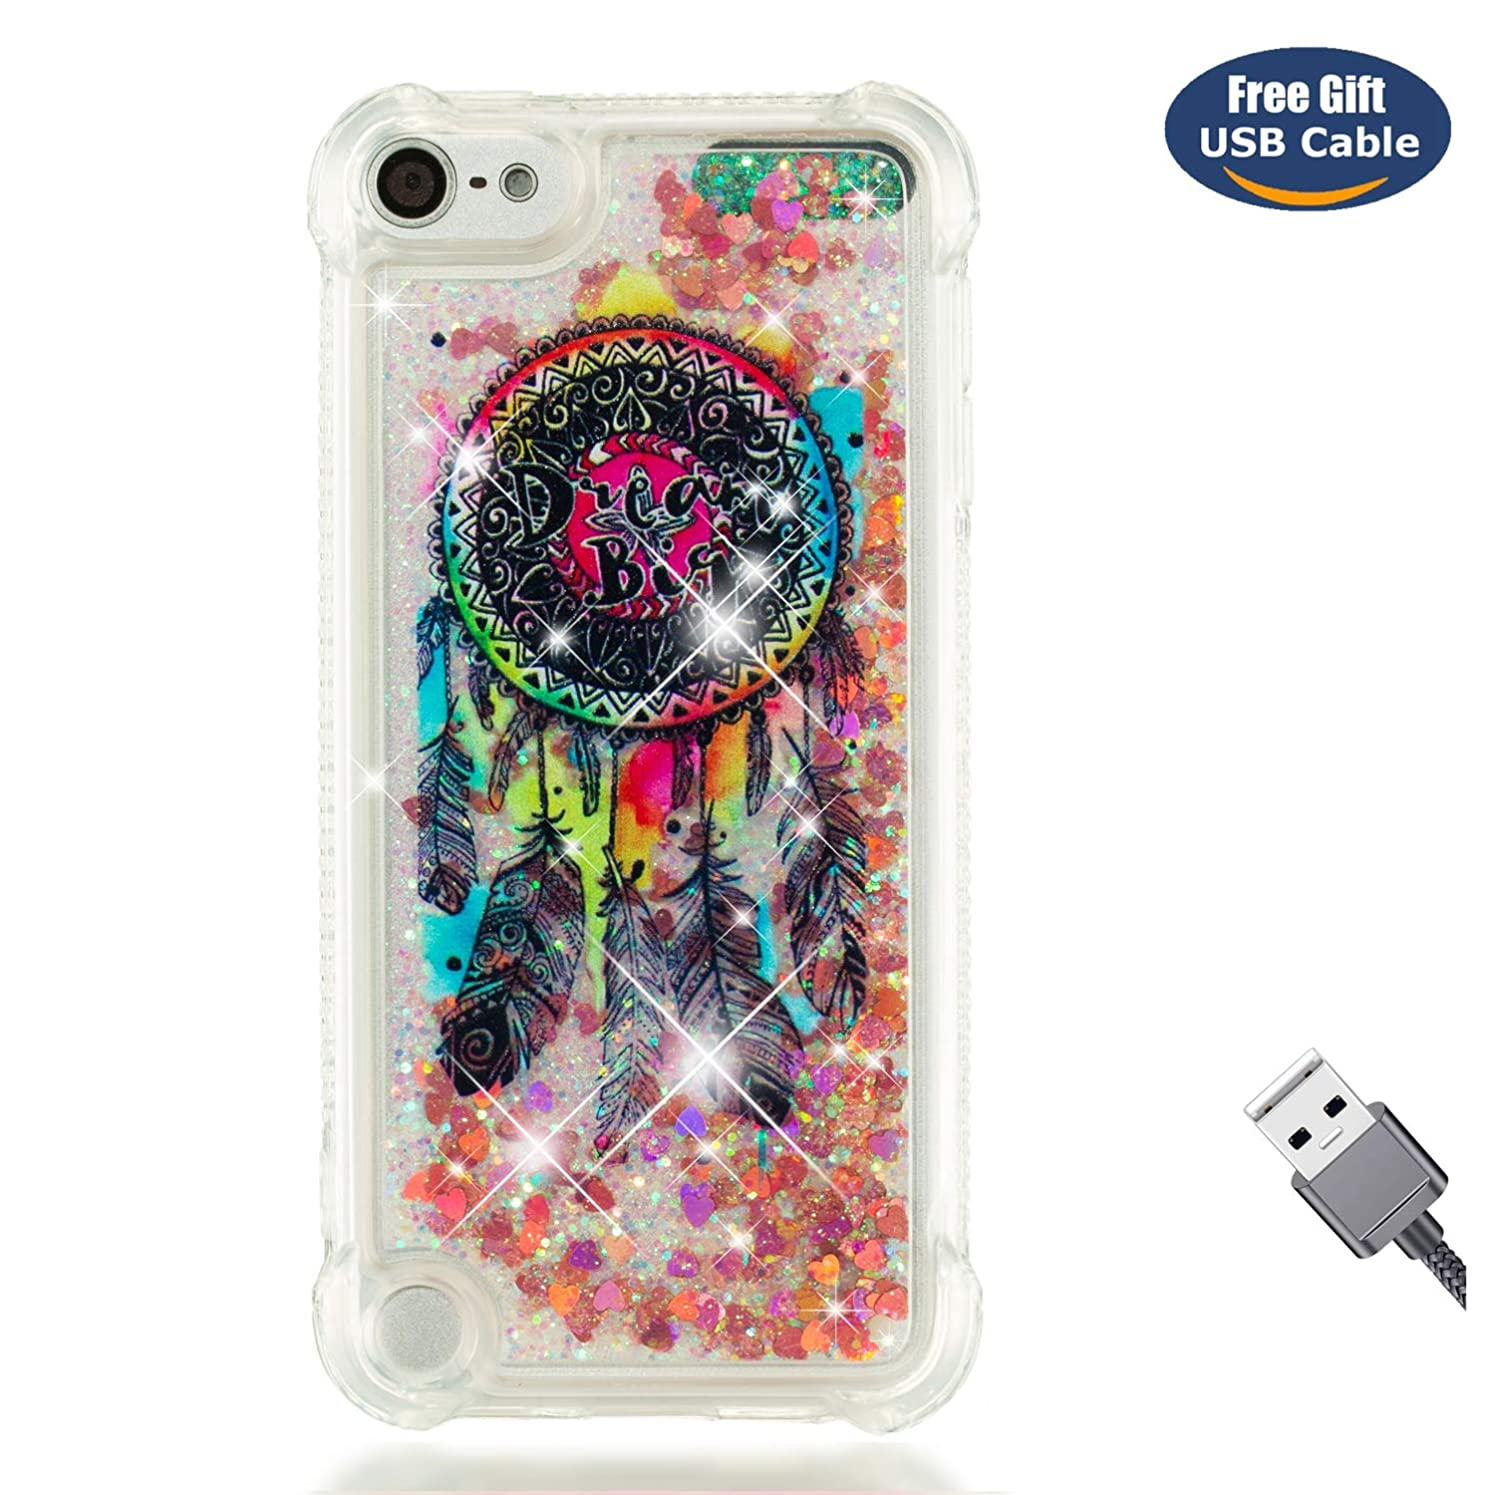 eatcye coque iphone 6